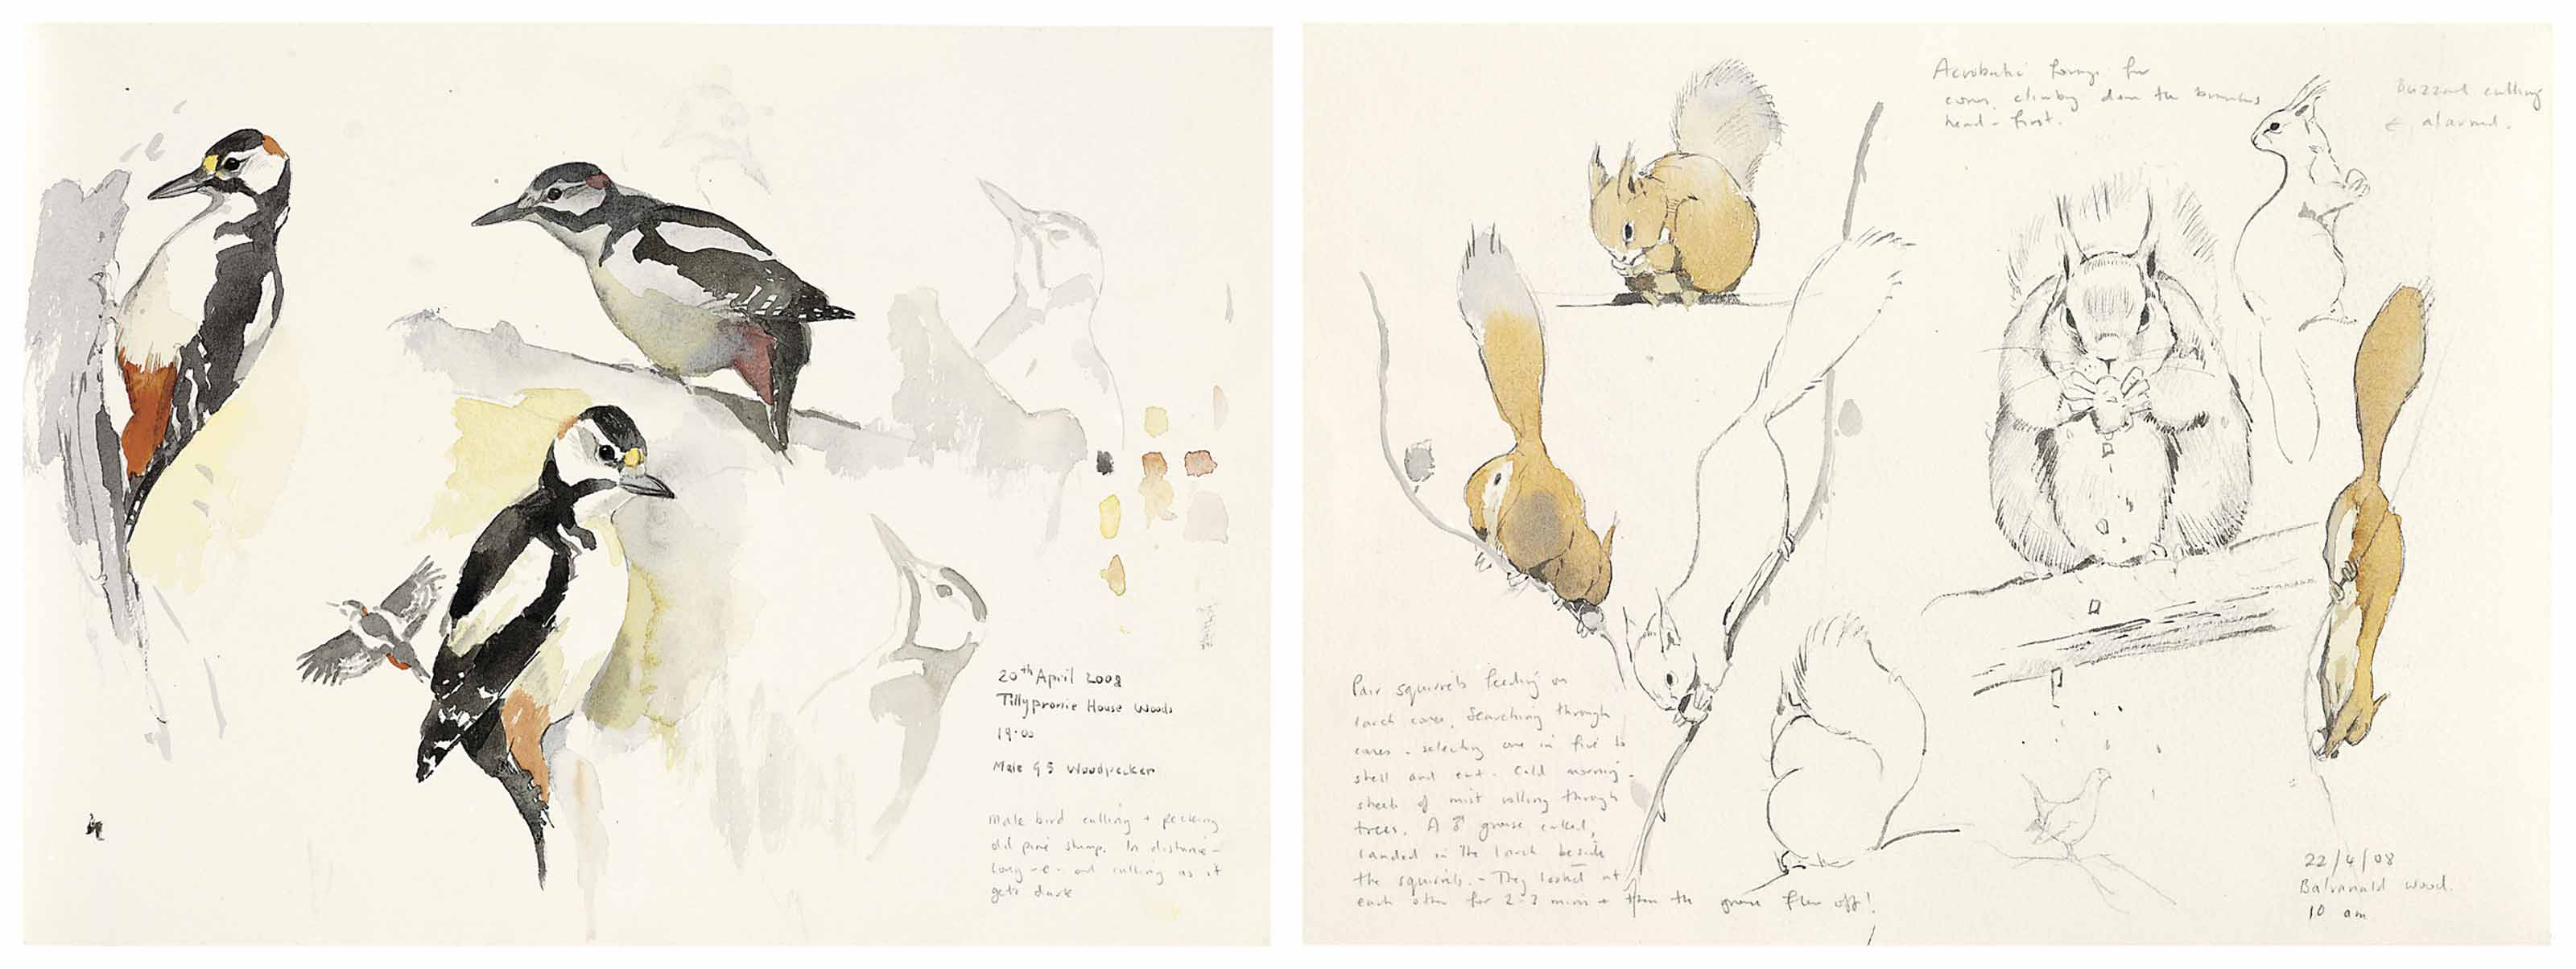 Album of sketches on the Tillypronie Estate, April 2008, including great spotted woodpecker, long eared owl, Scottish crossbill, red squirrel, curlew, merlin, ptarmigan, redshank, red grouse, osprey and others